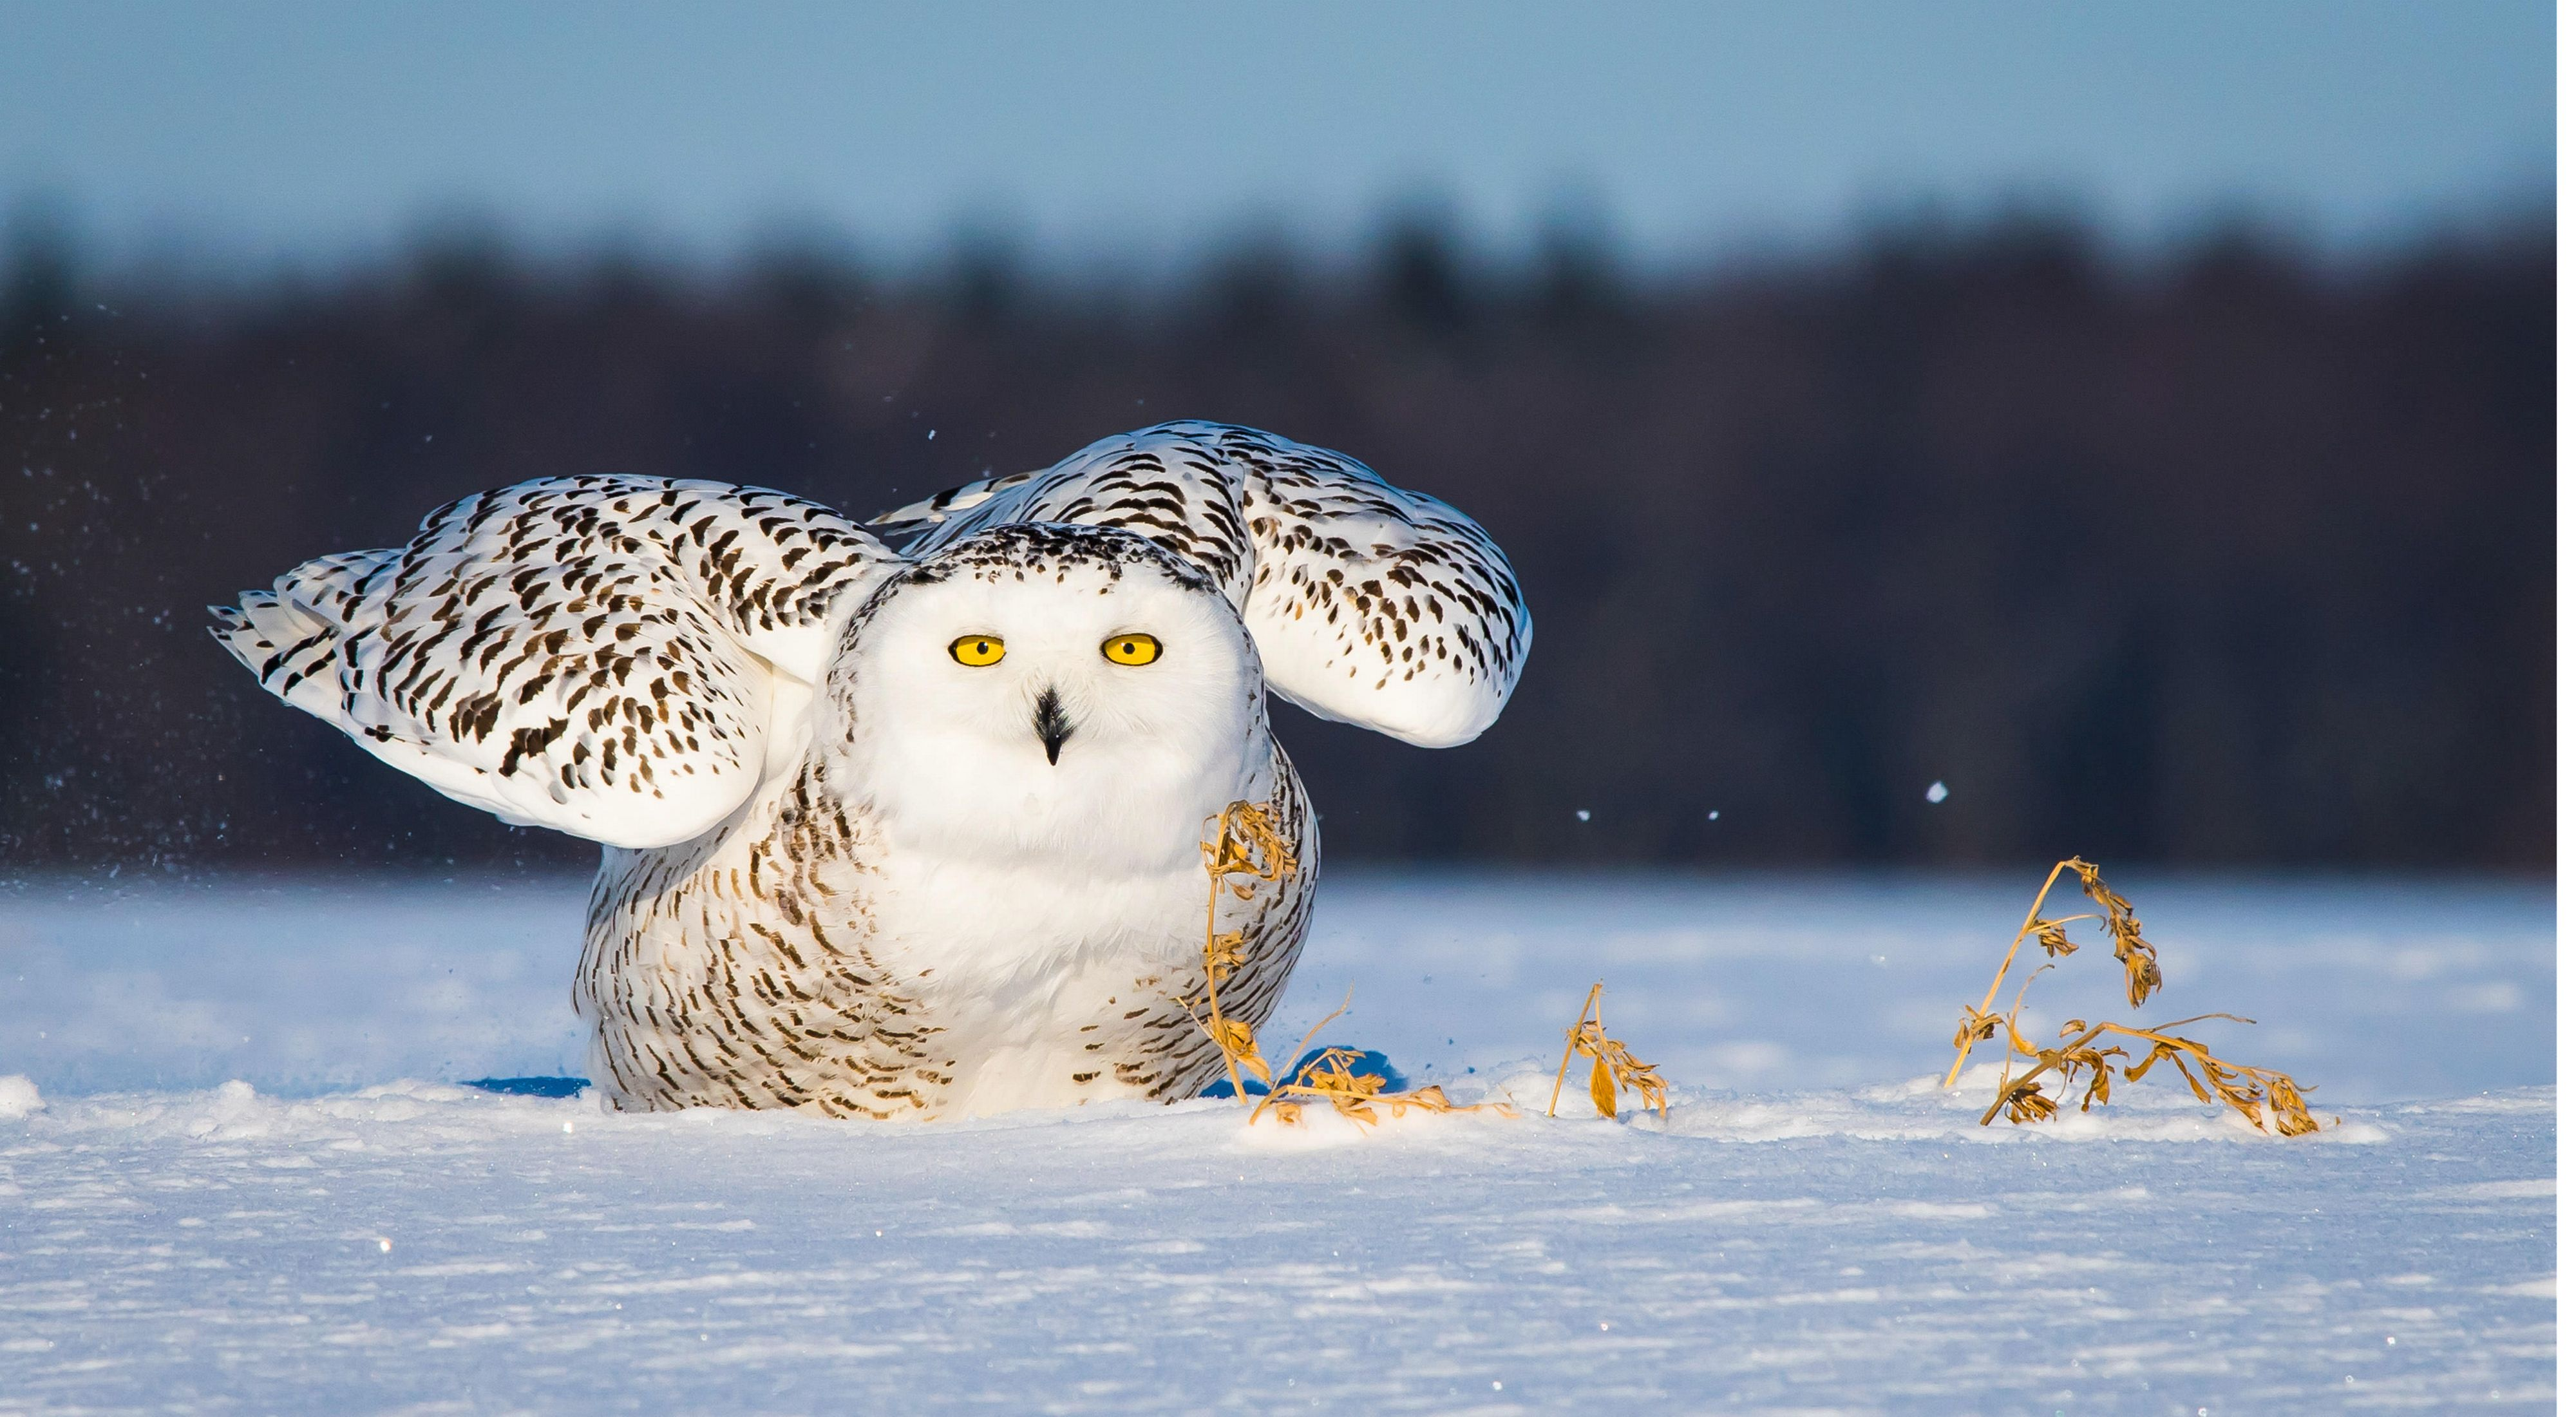 Close up of snowy owl looking at camera and sitting on the snow, with wings up and back